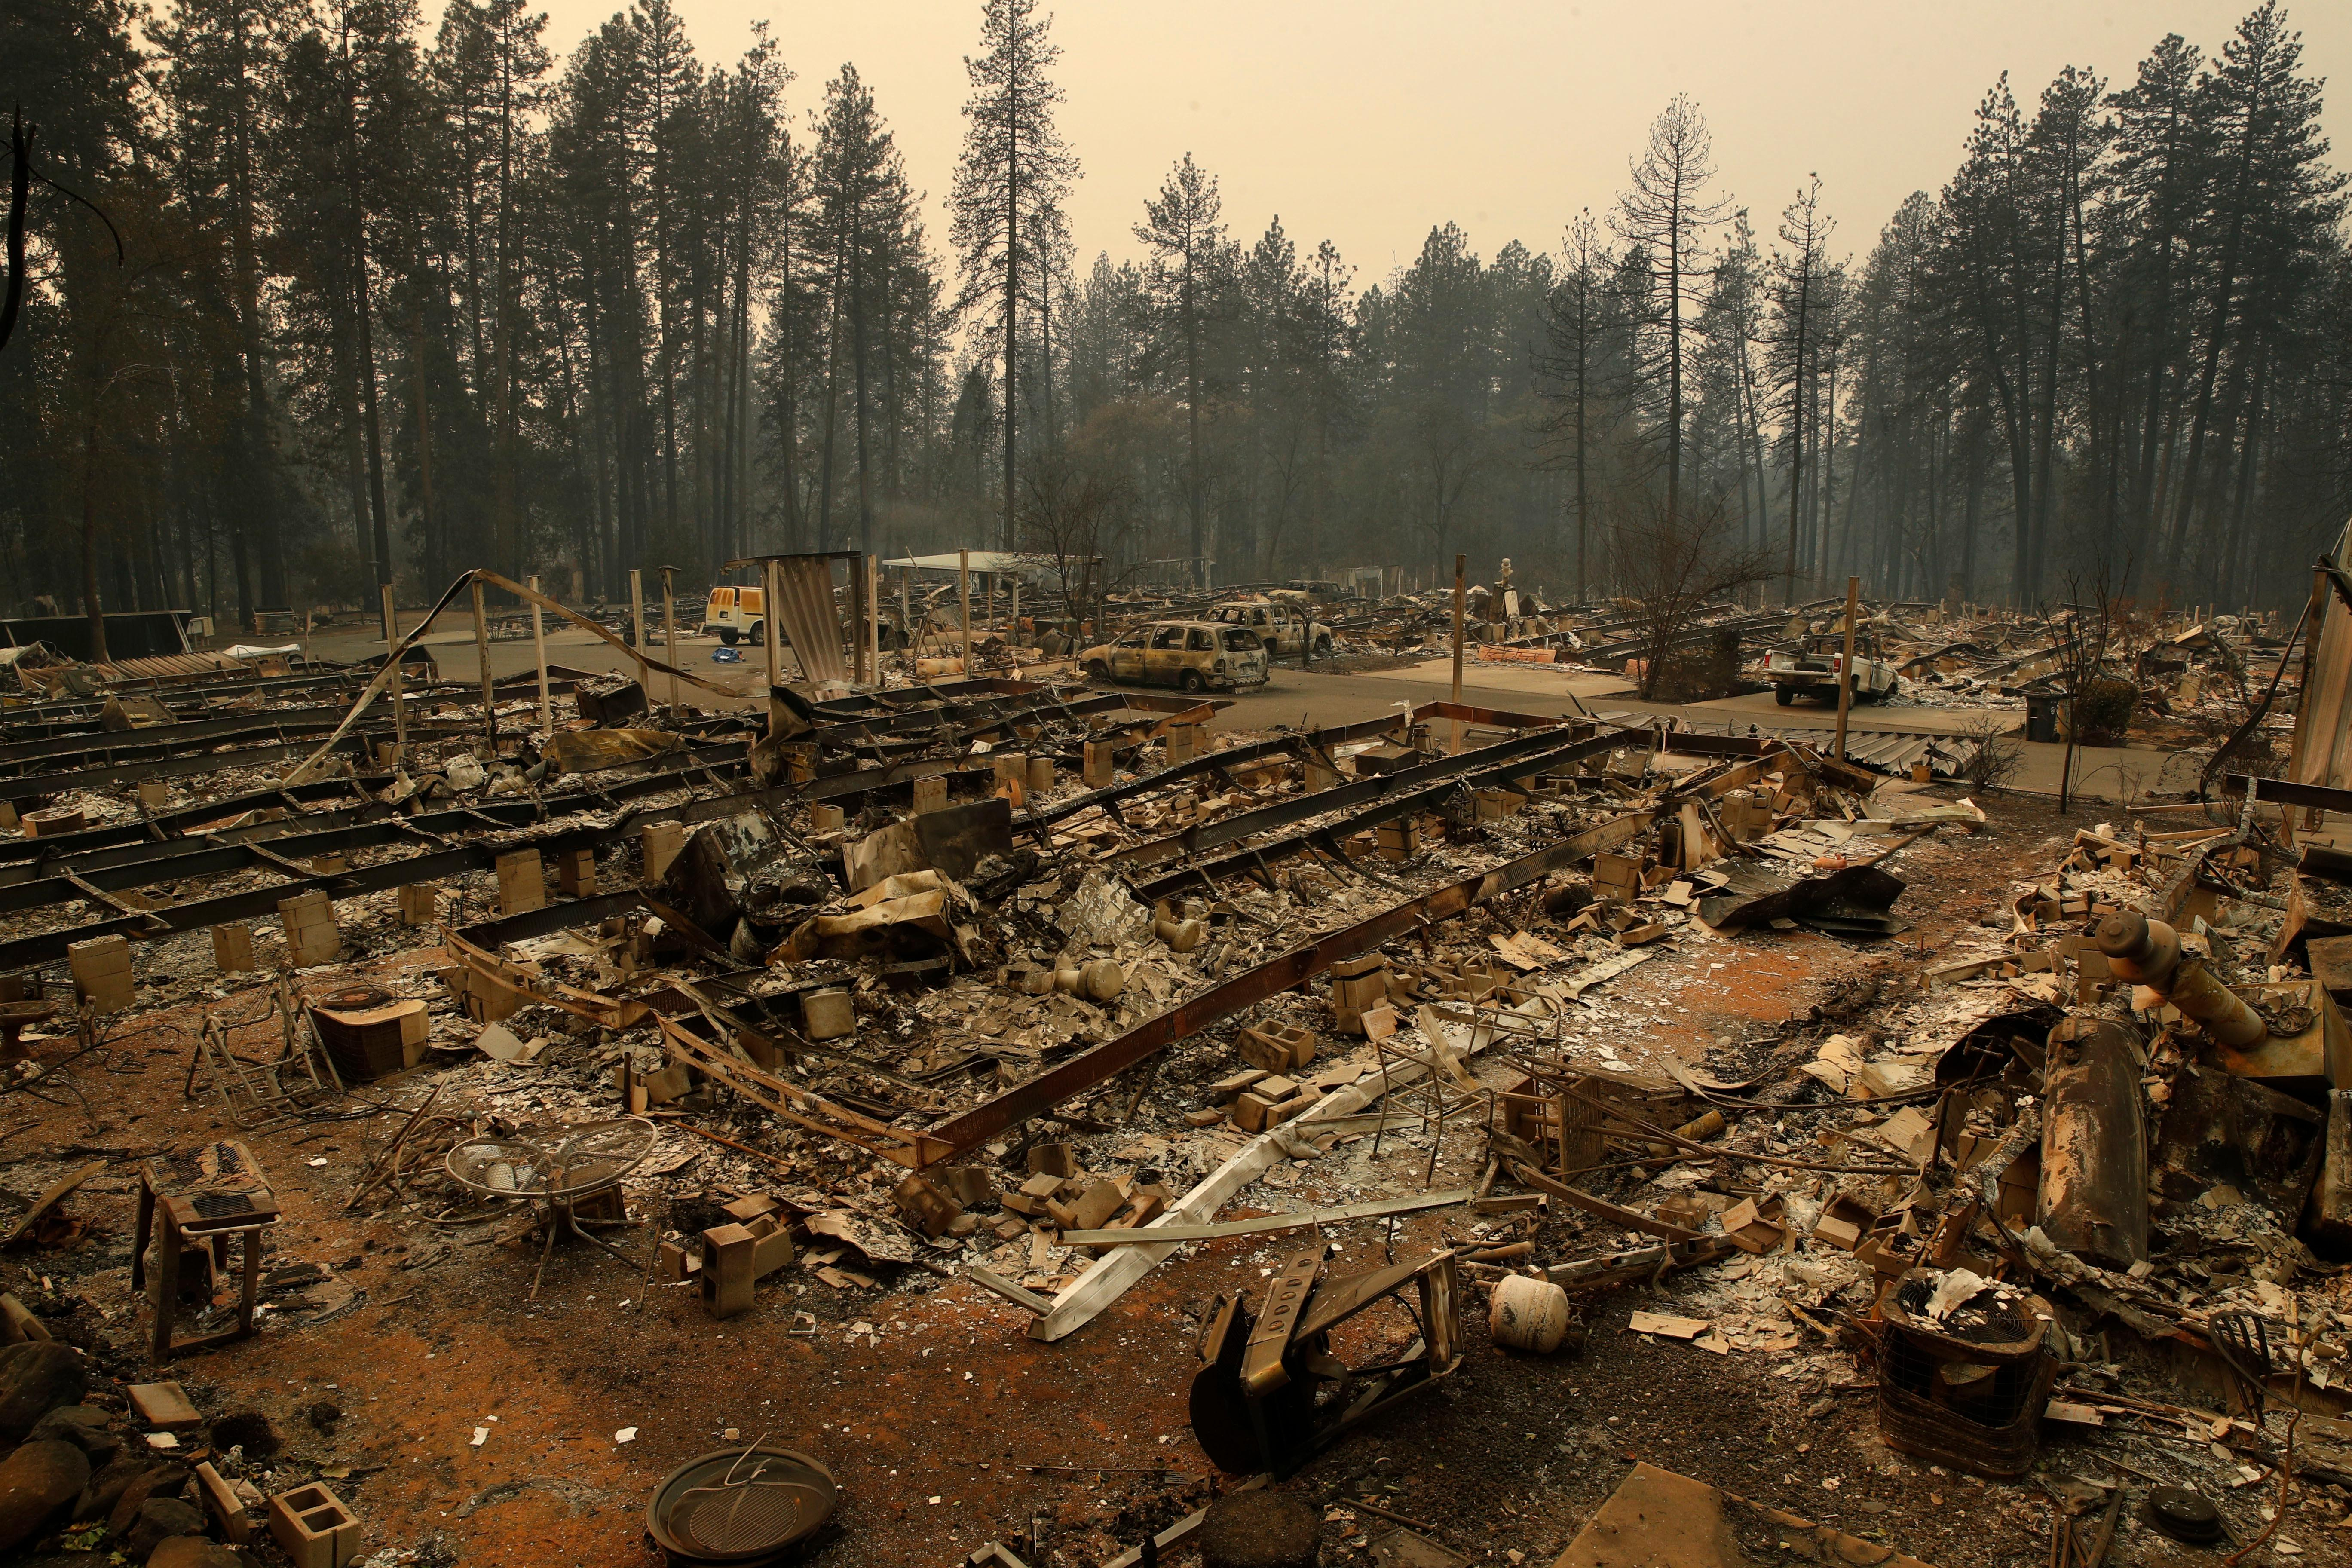 Rubble remains where mobile homes once stood at the Camp Fire, Monday, Nov. 12, 2018, in Paradise, Calif. (AP Photo/John Locher)